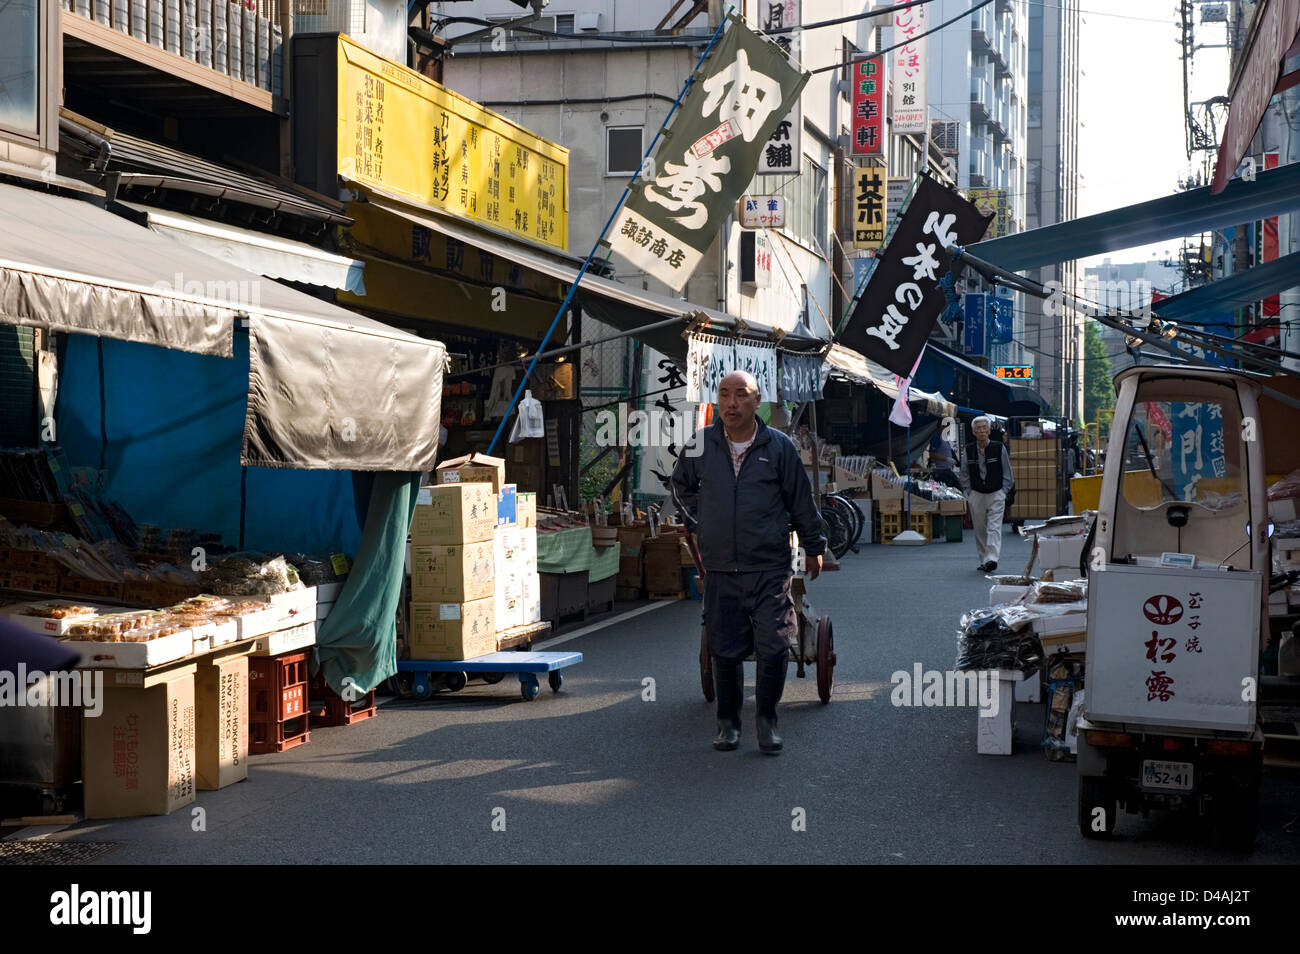 Early morning street lined with shops and restaurants and workers moving about near Tsukiji Wholesale Fish Market - Stock Image